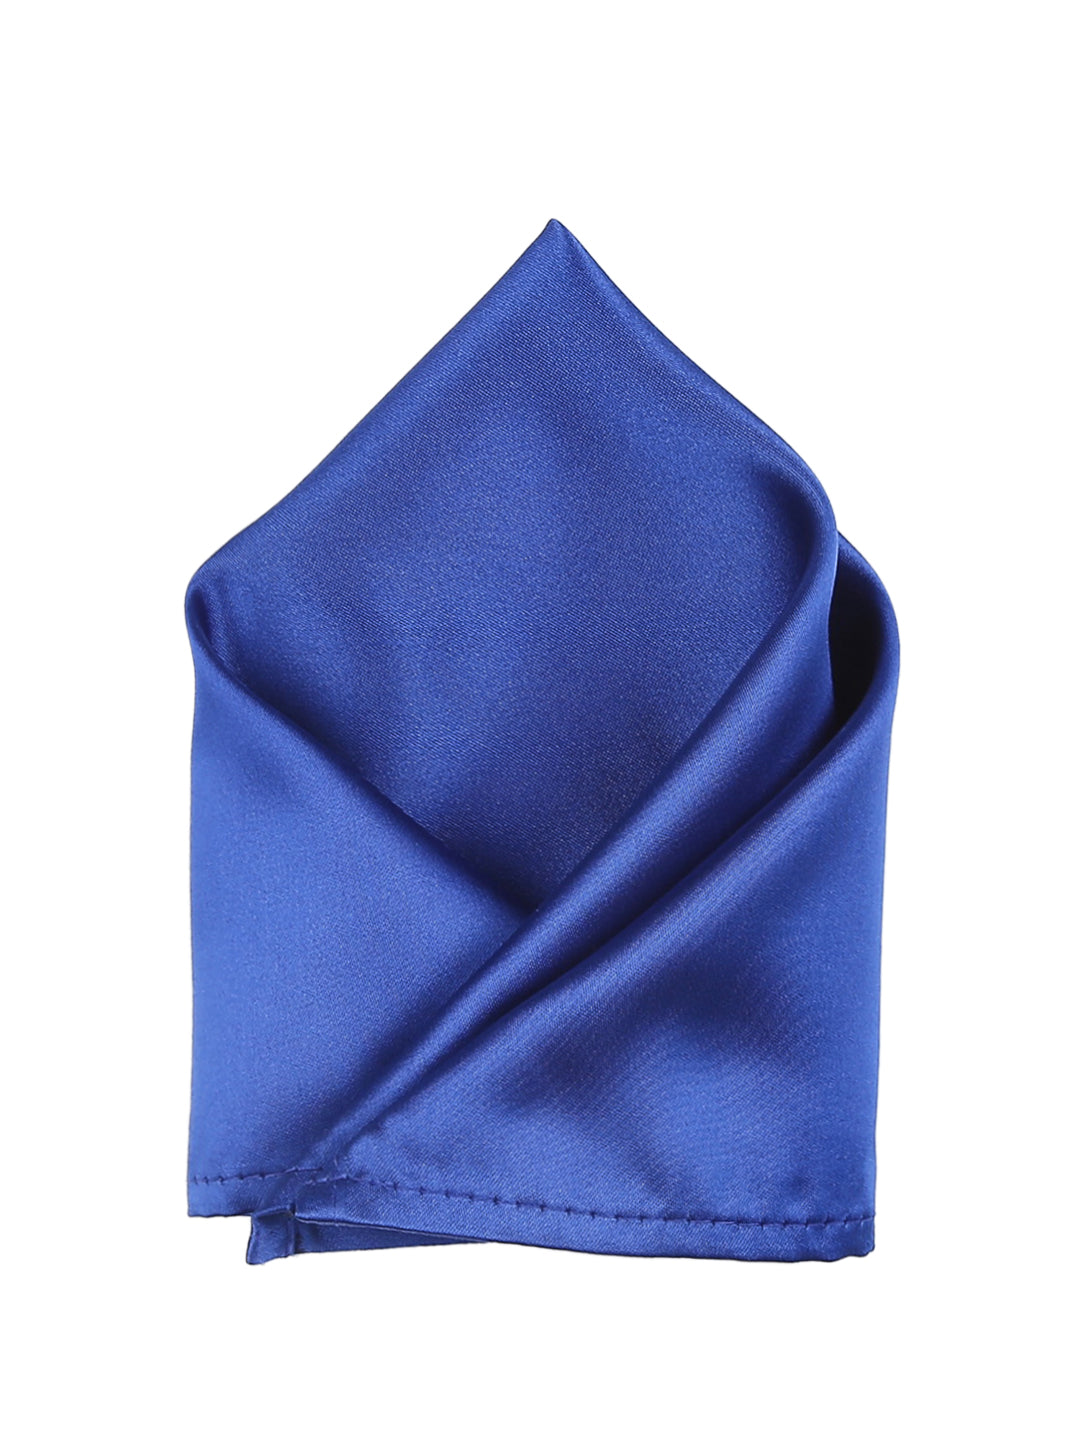 Zido Pocket Square for Men PSQ199